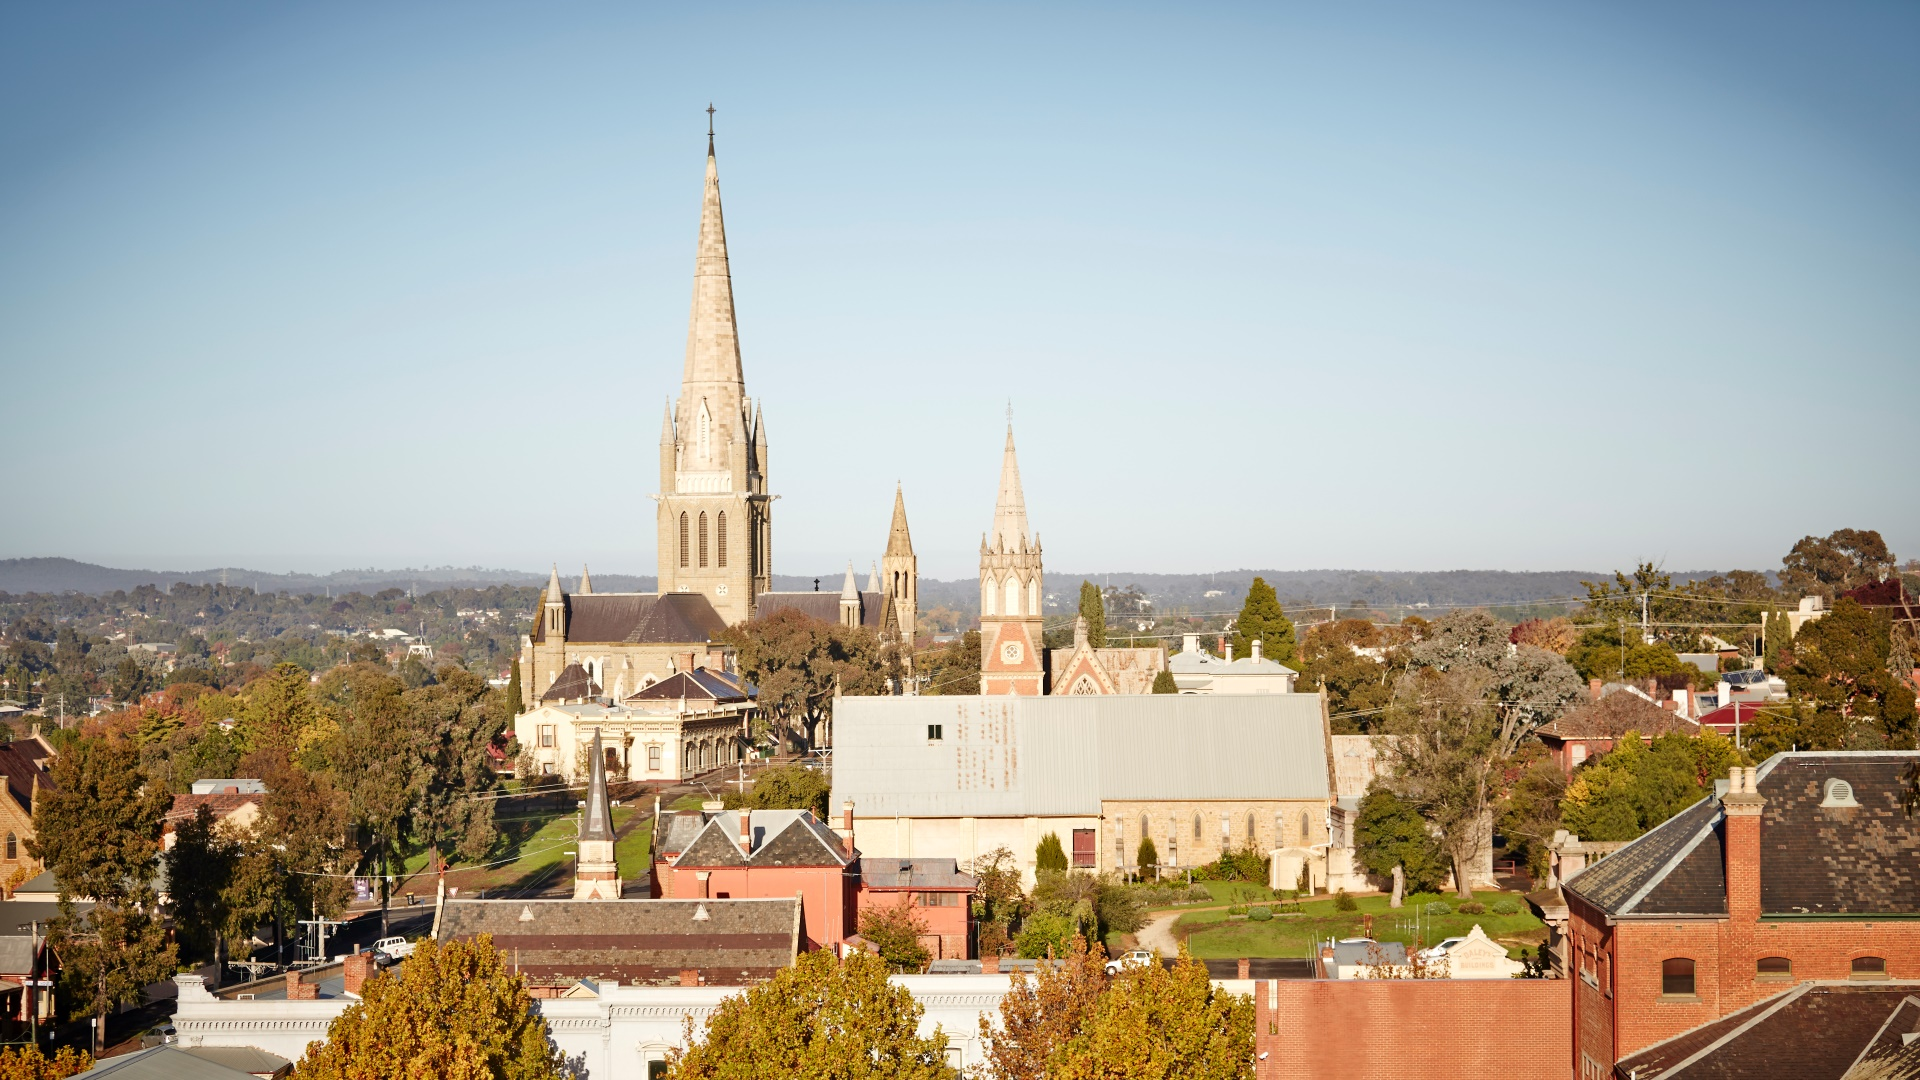 Poppet Head View over Bendigo - Image by Ewen Bell